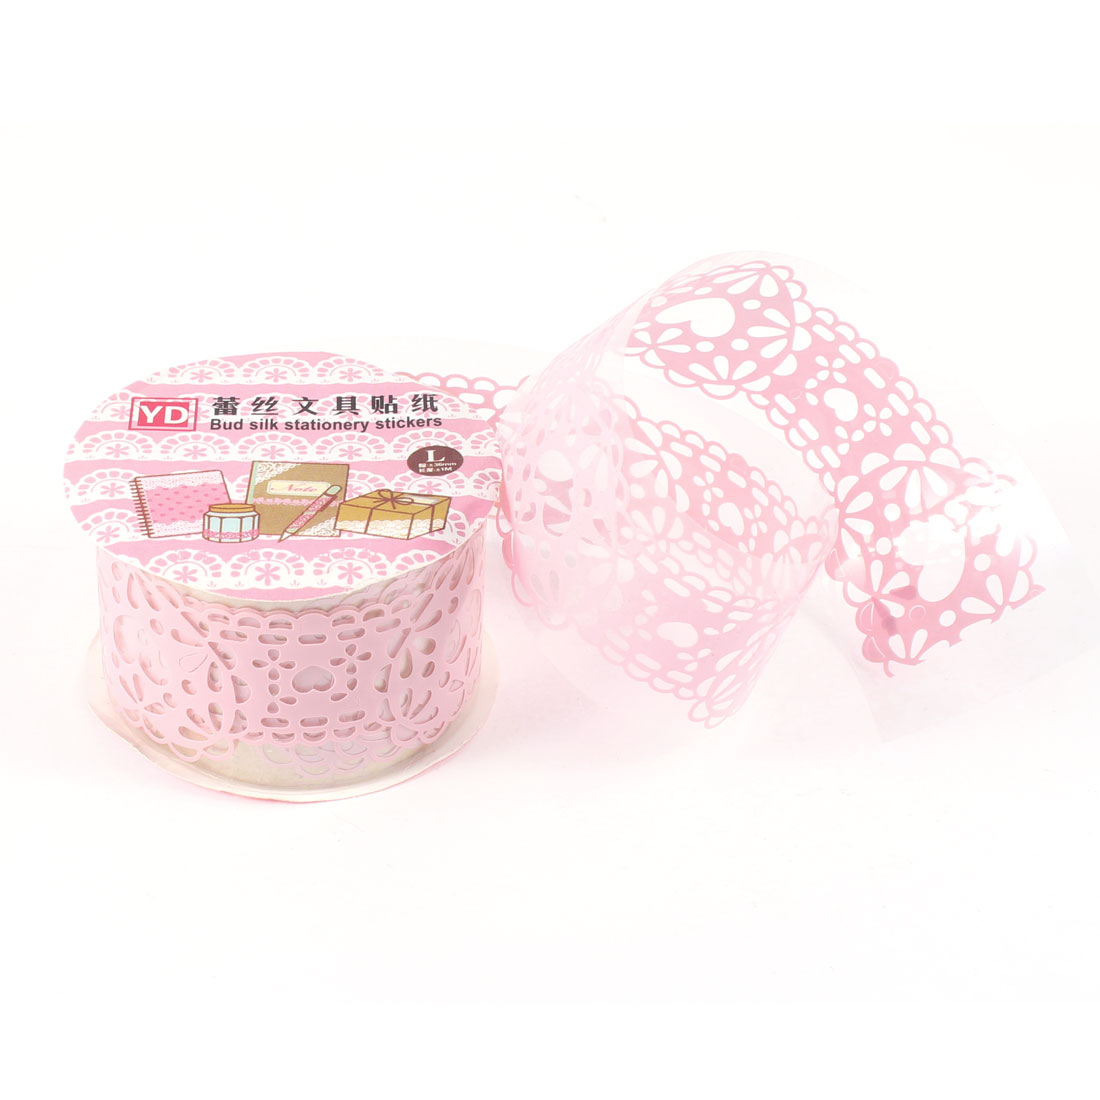 Heart Hollow Lace Diary Stationery Plastic Decorative Sticker Adhesive Tape Pink